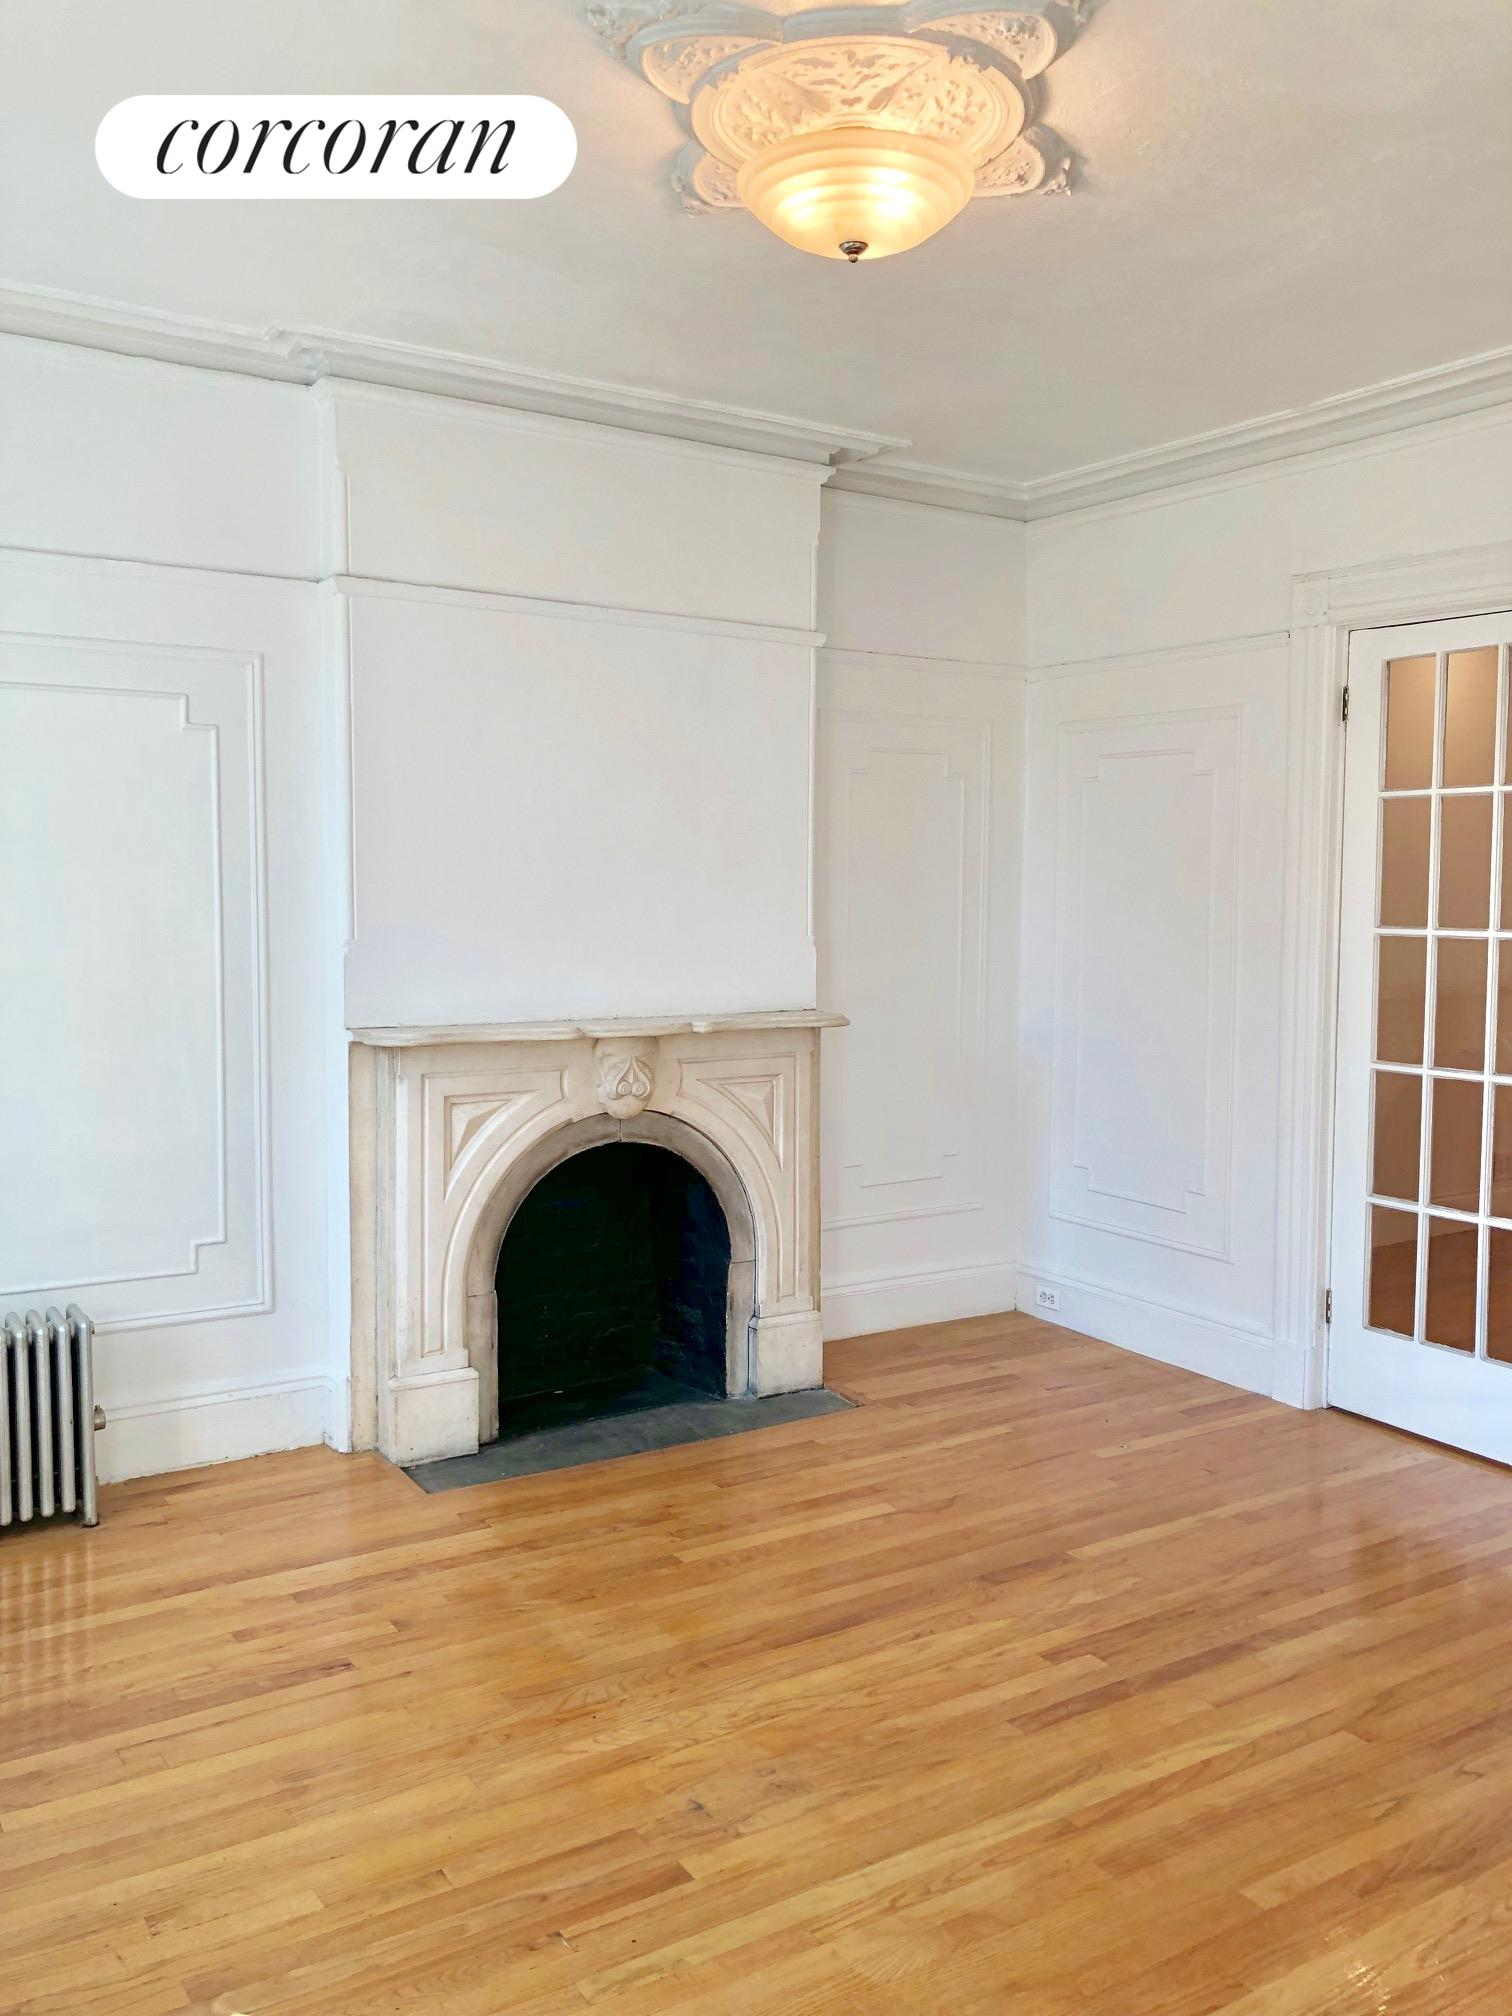 215A Prospect Avenue, Apt. 2, No image available